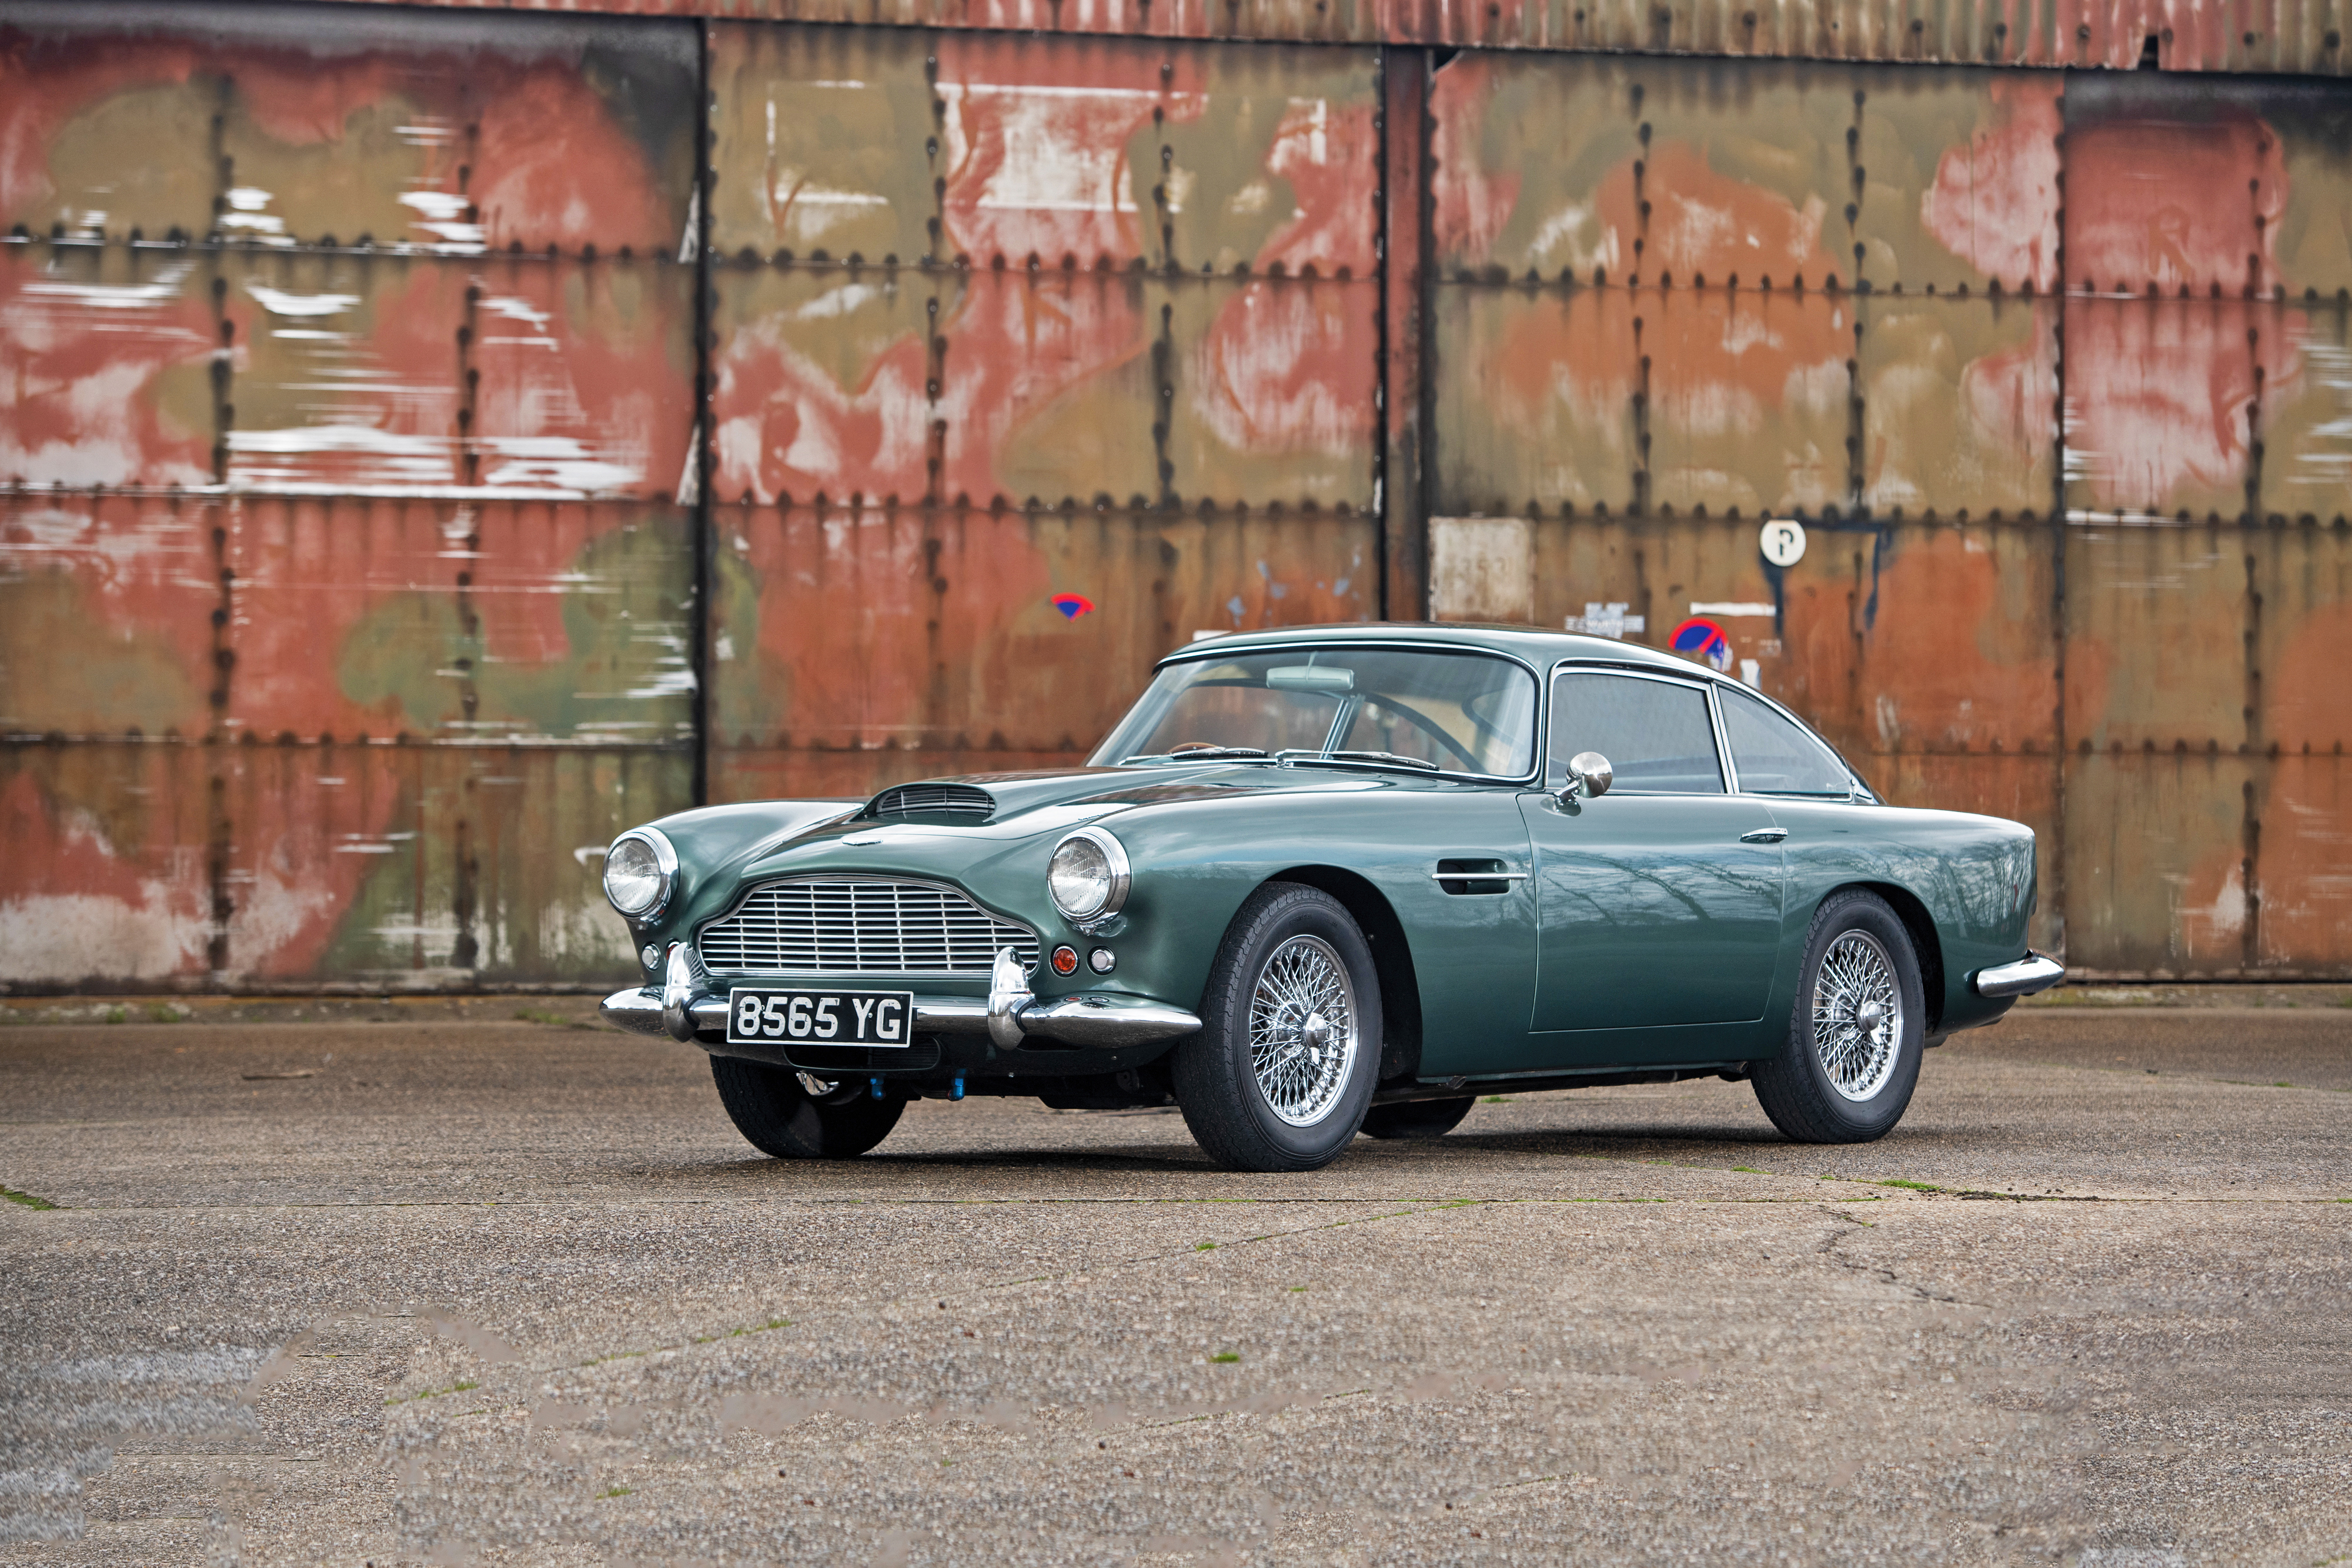 Why do we always forget about the Aston Martin DB4?